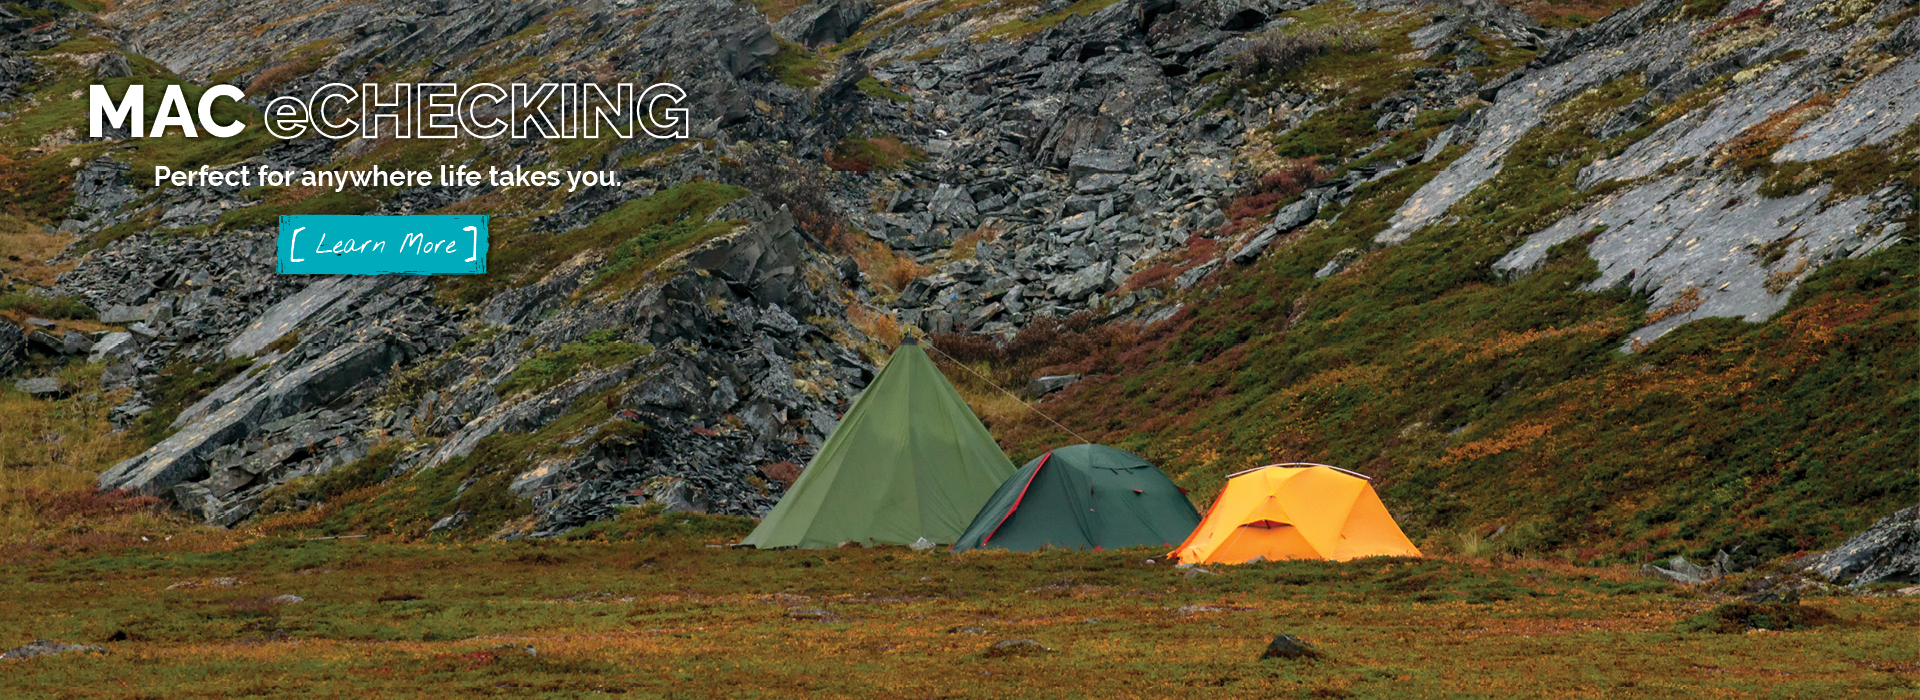 Tents at base of a mountain, eChecking is always there for you.